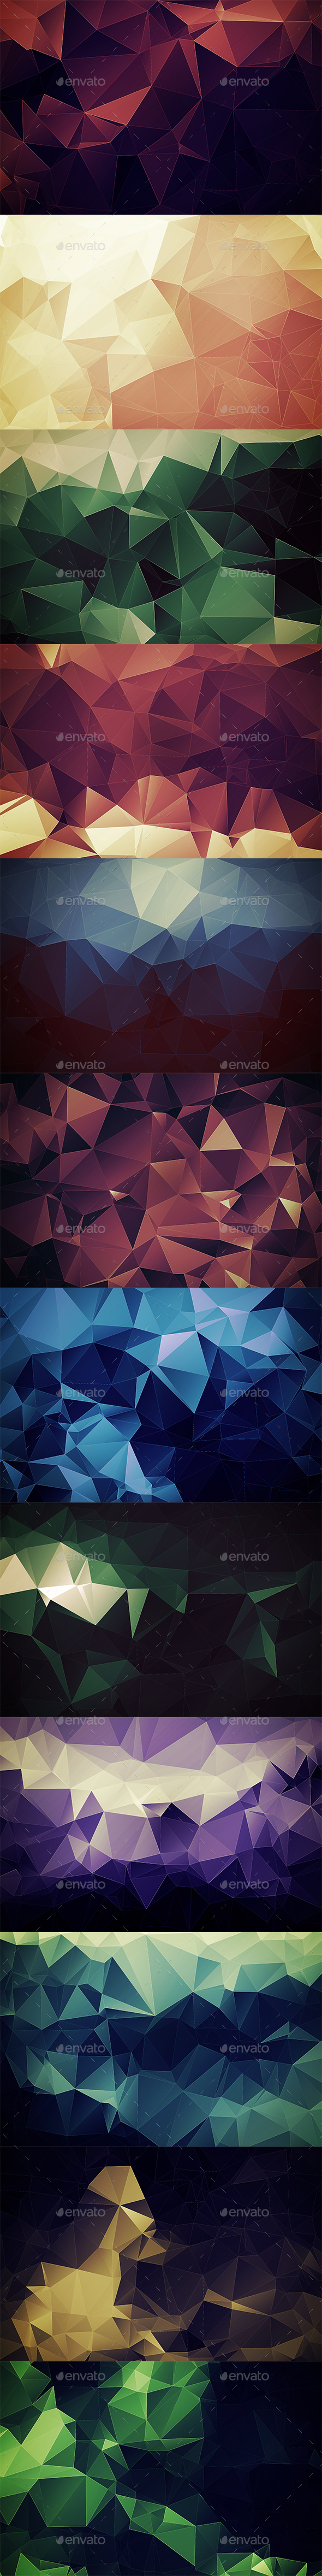 Abstract Polygonal Backgrounds Vol4 - Abstract Backgrounds